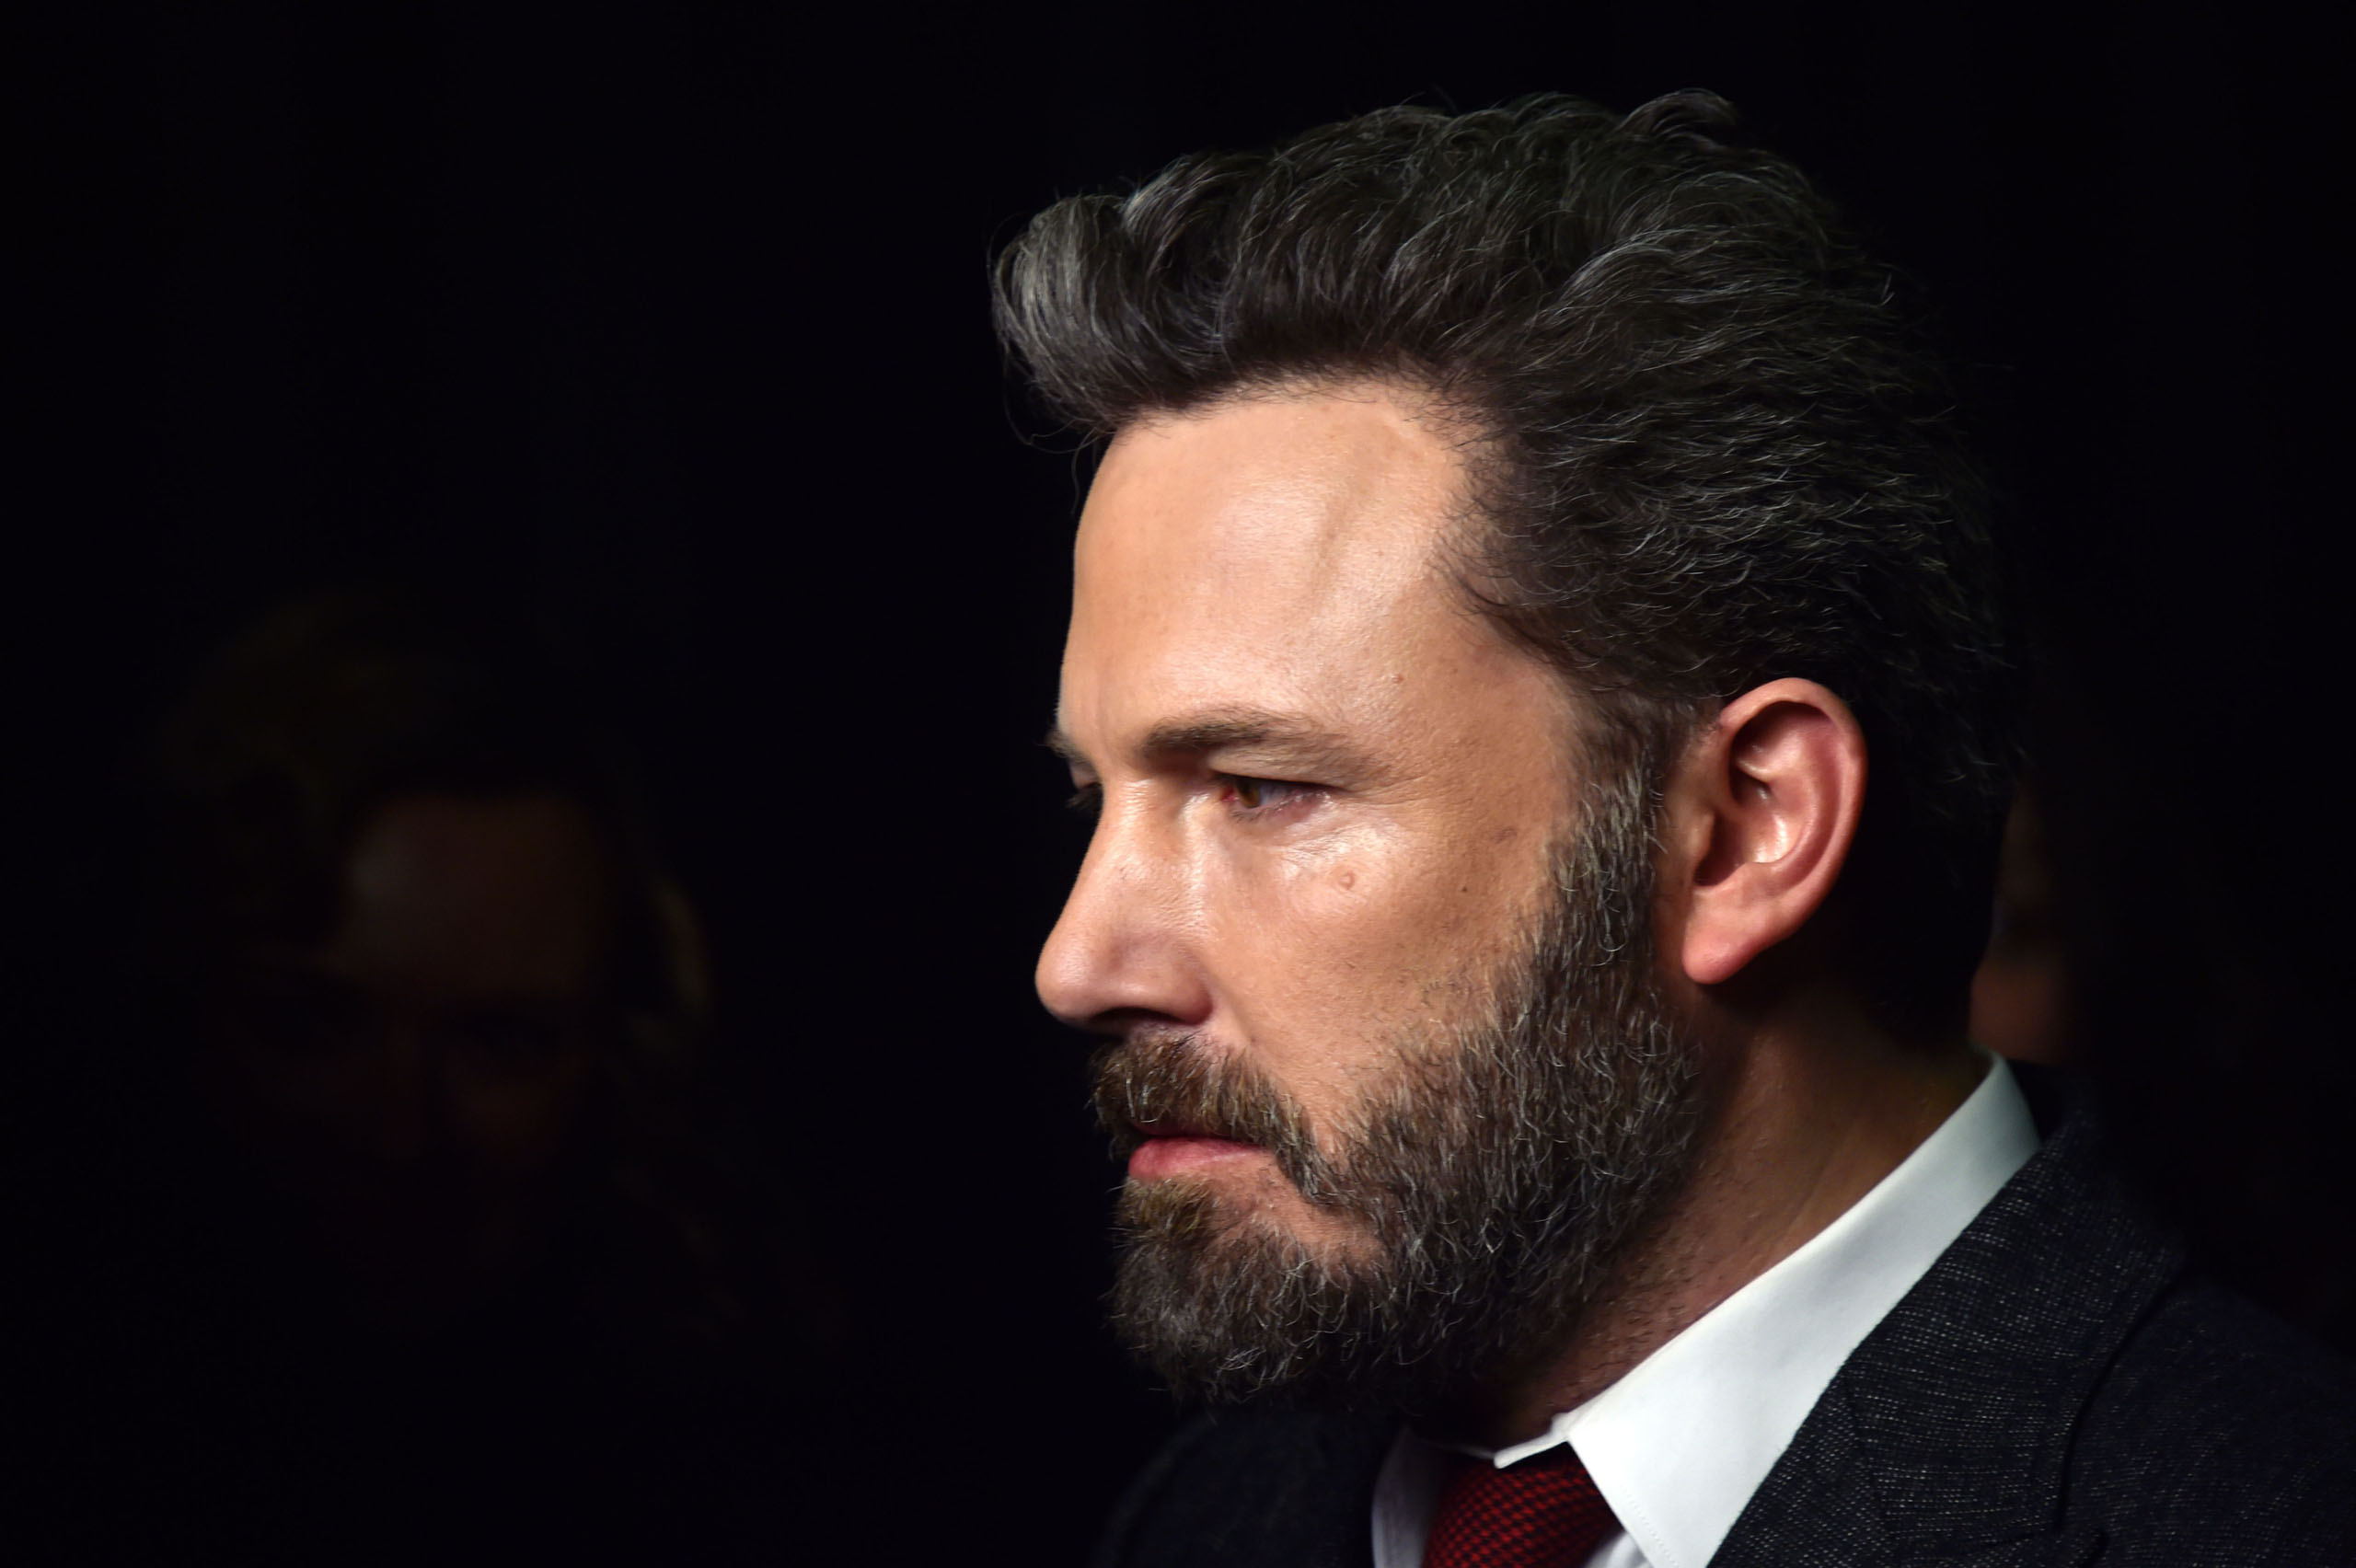 Ben Affleck attends the premiere of  Live by Night  at the Cinema UGC Normandie in Paris on Jan. 16, 2017.